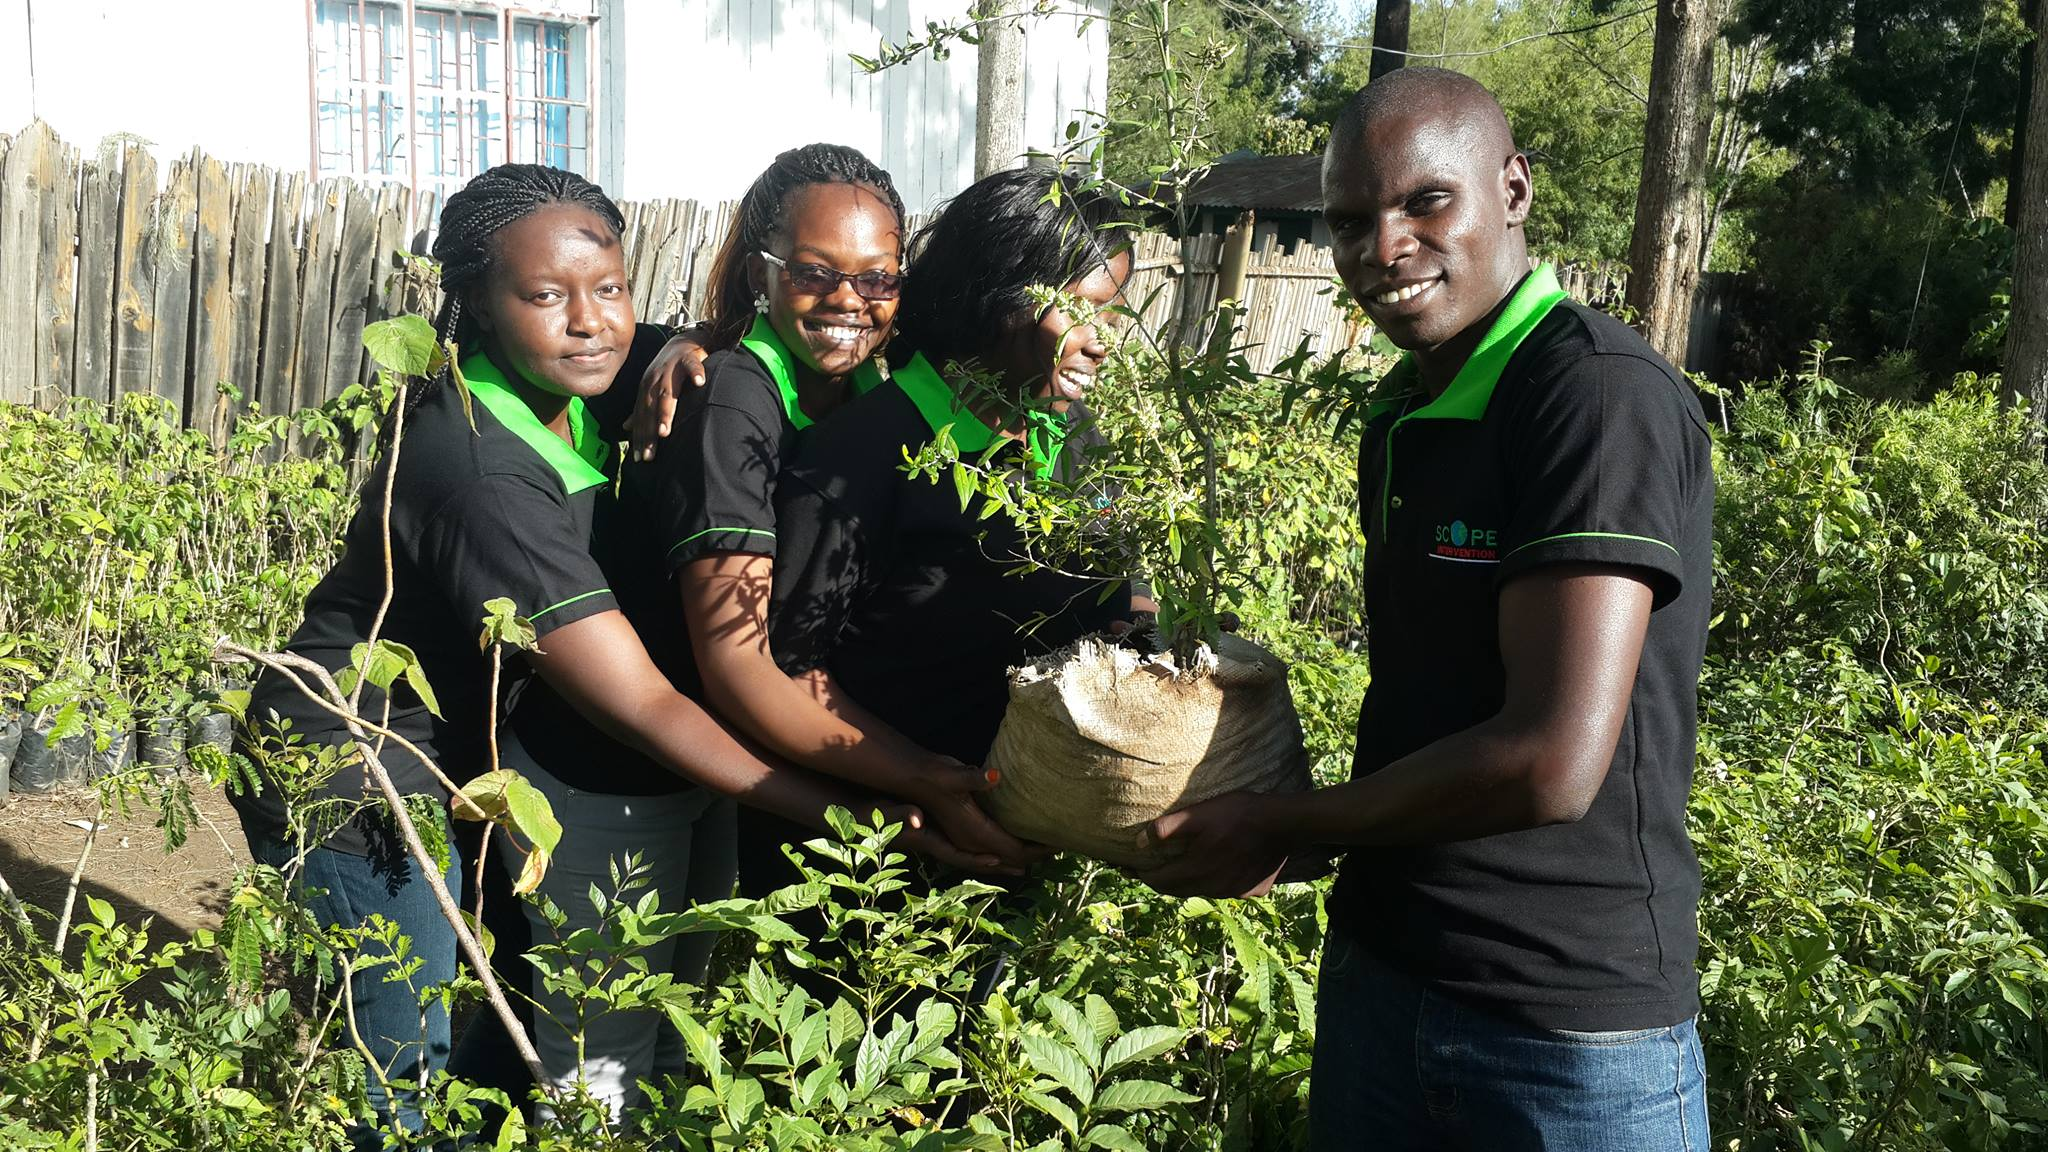 CHAMPIONS OF SUSTAINABILITY: East African youth are innovating to adapt to climate change